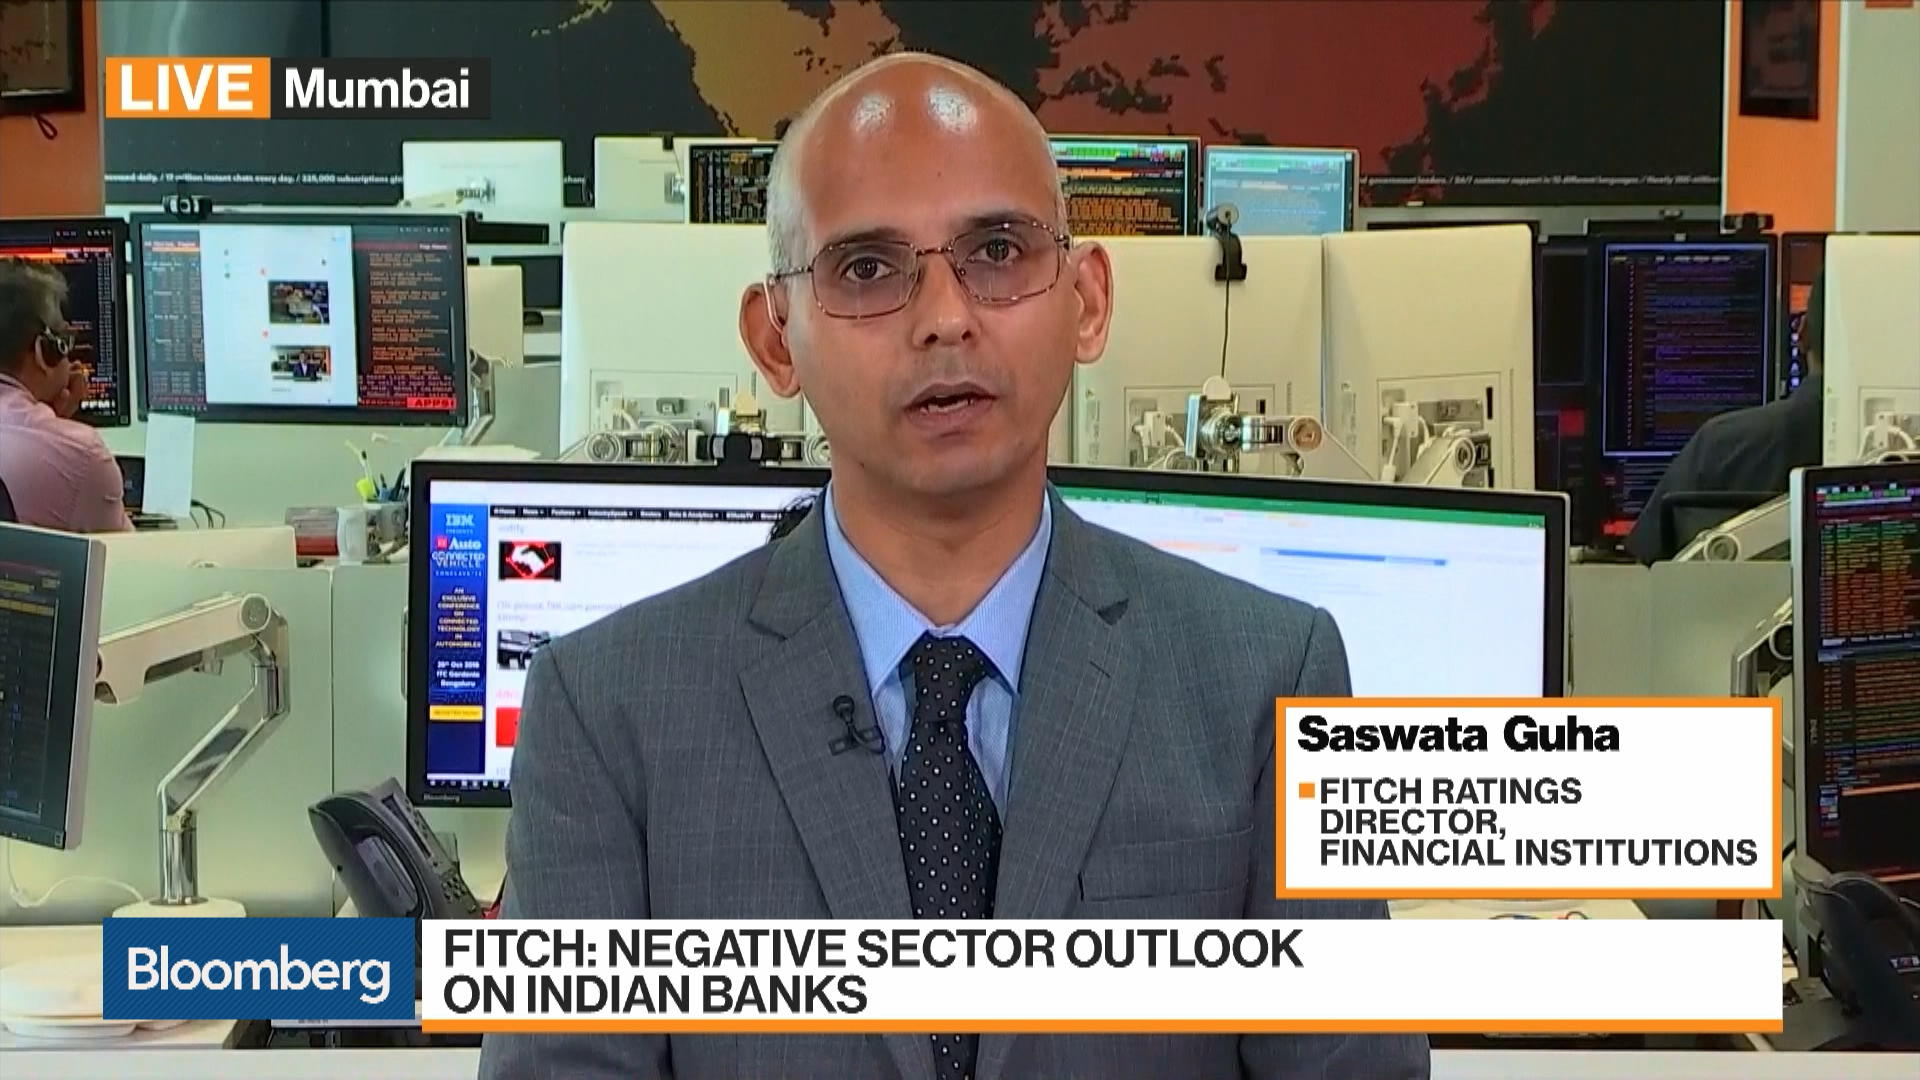 Fitch Ratings Has a Negative Sector Outlook on Indian Banks